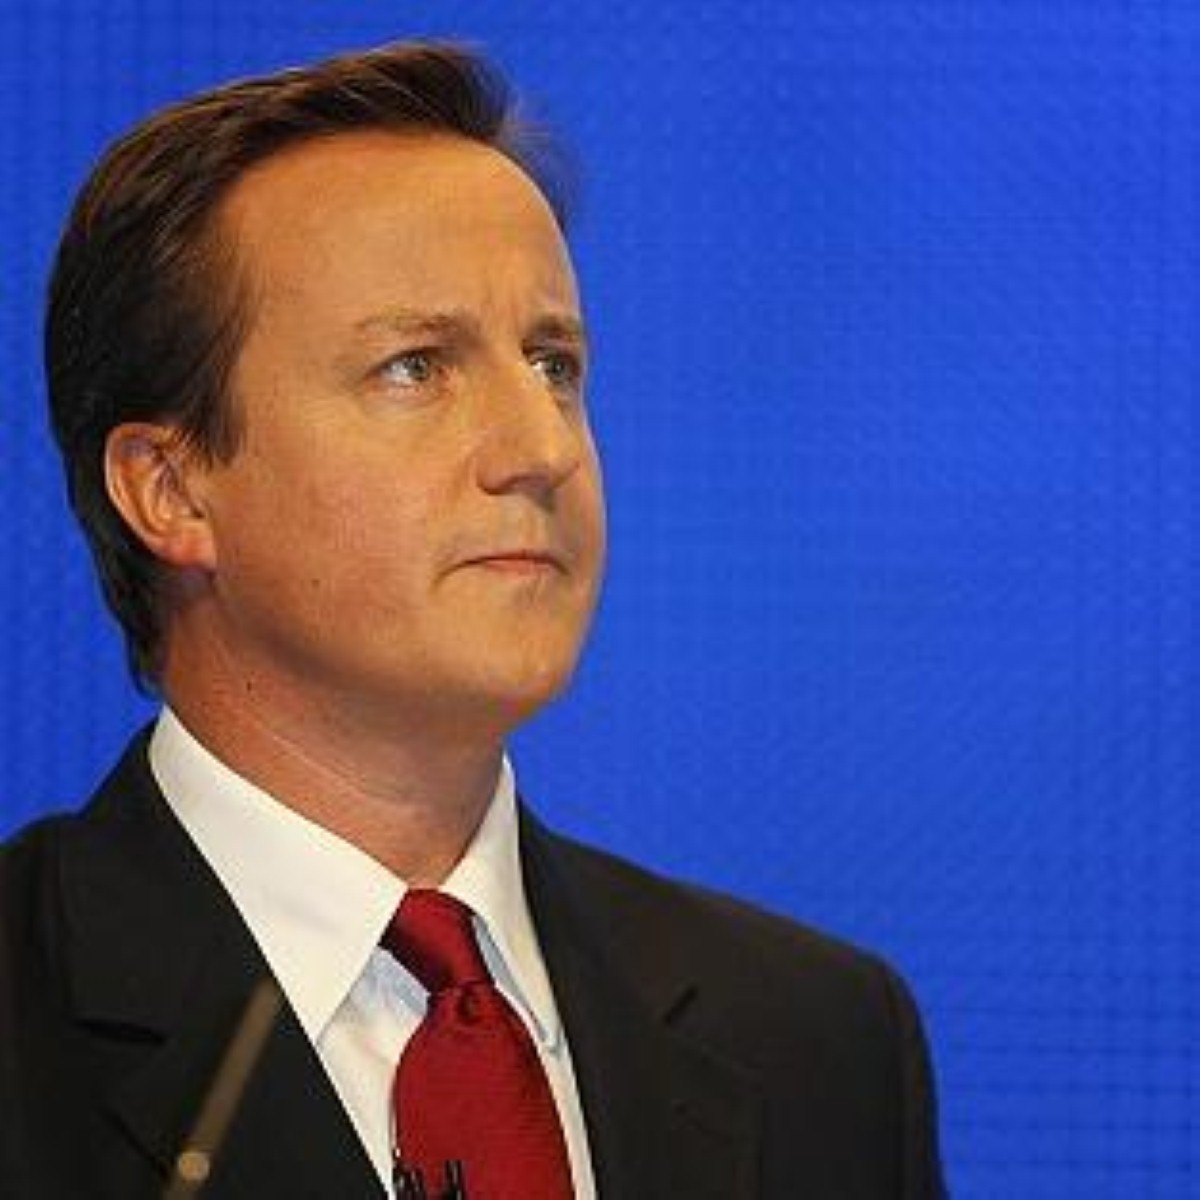 David Cameron: 'This is simply a terrible disease and it is a scandal that we as a country haven't kept pace with it'